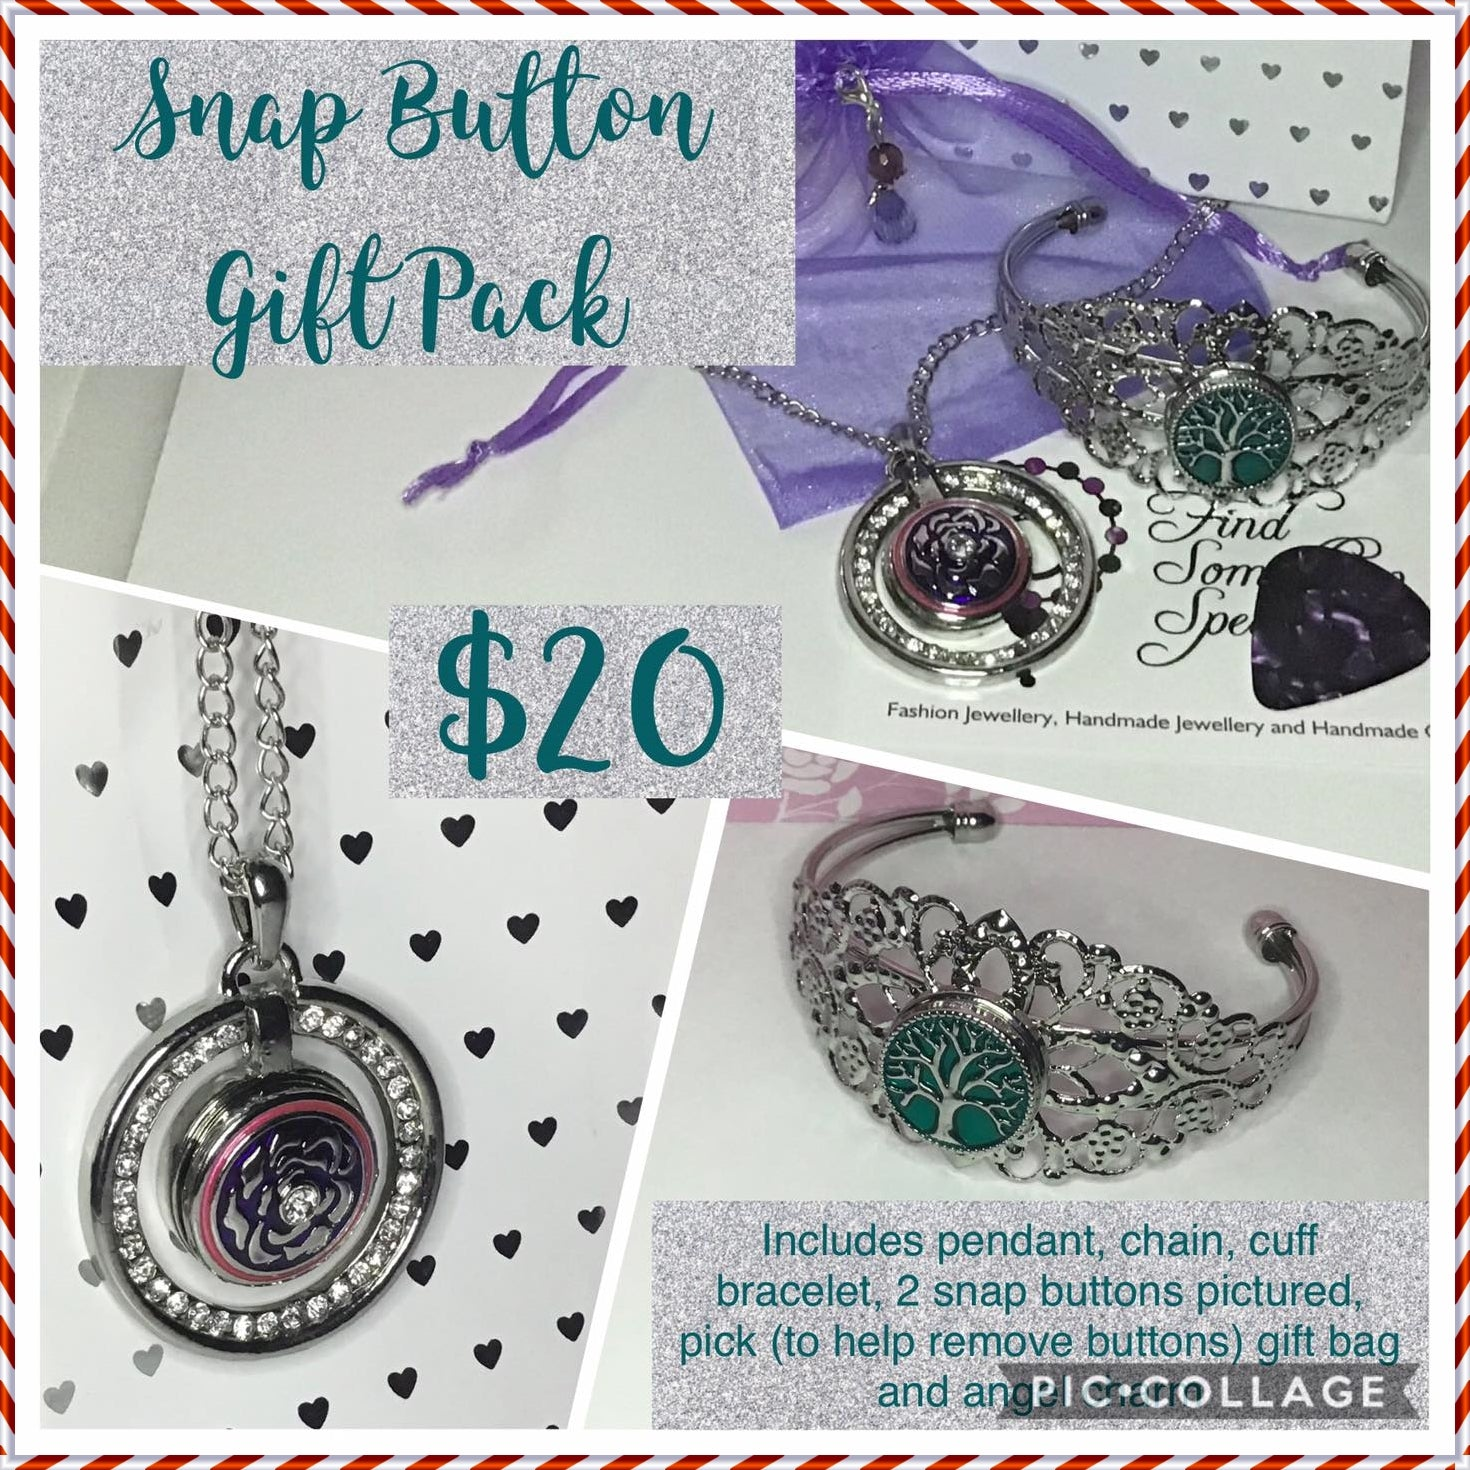 Snap Button Gift Pack